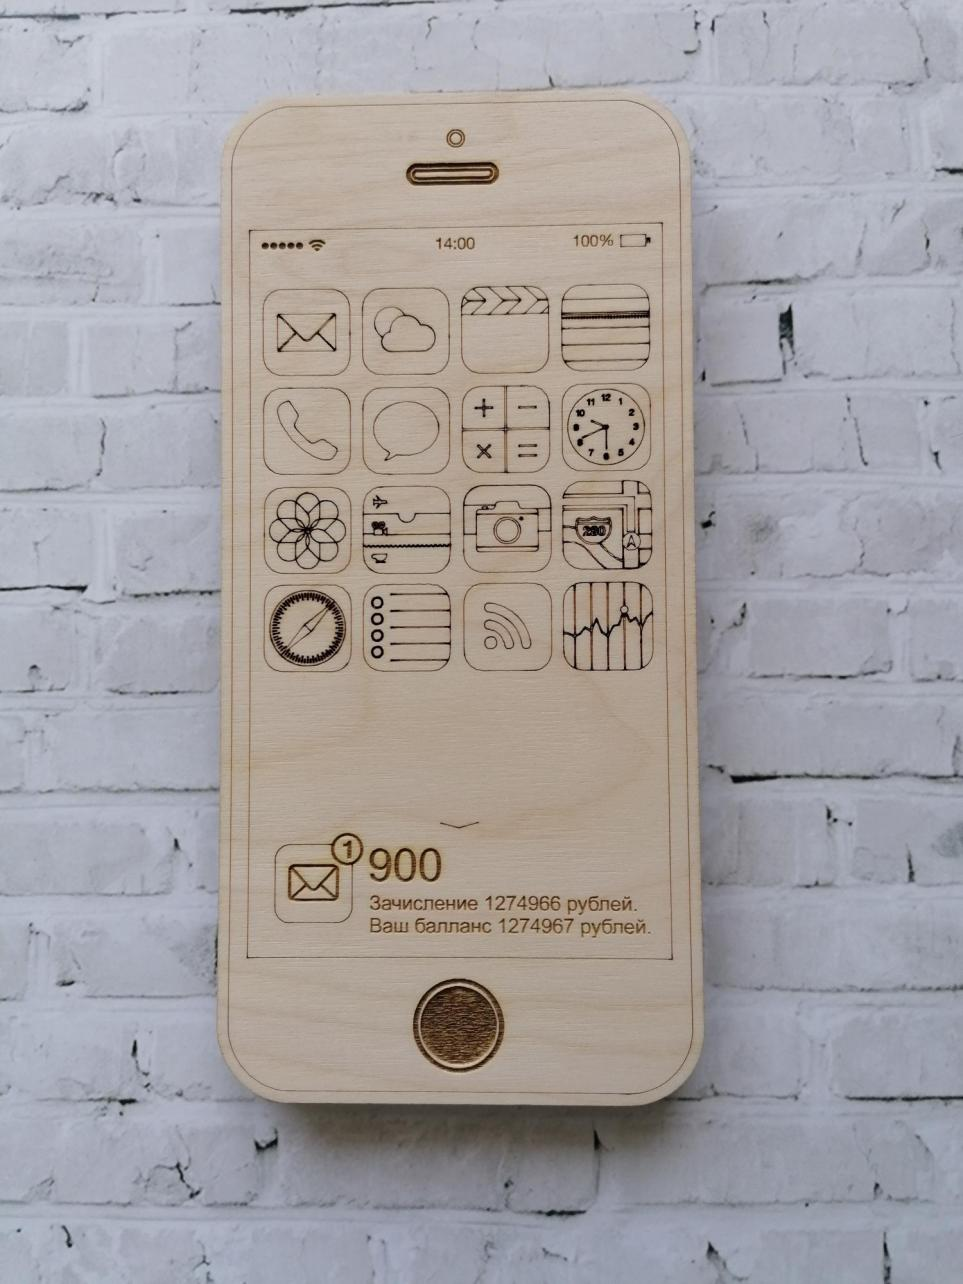 Laser Cut Wooden Wallet Banknotes Box iPhone Shaped Free Vector